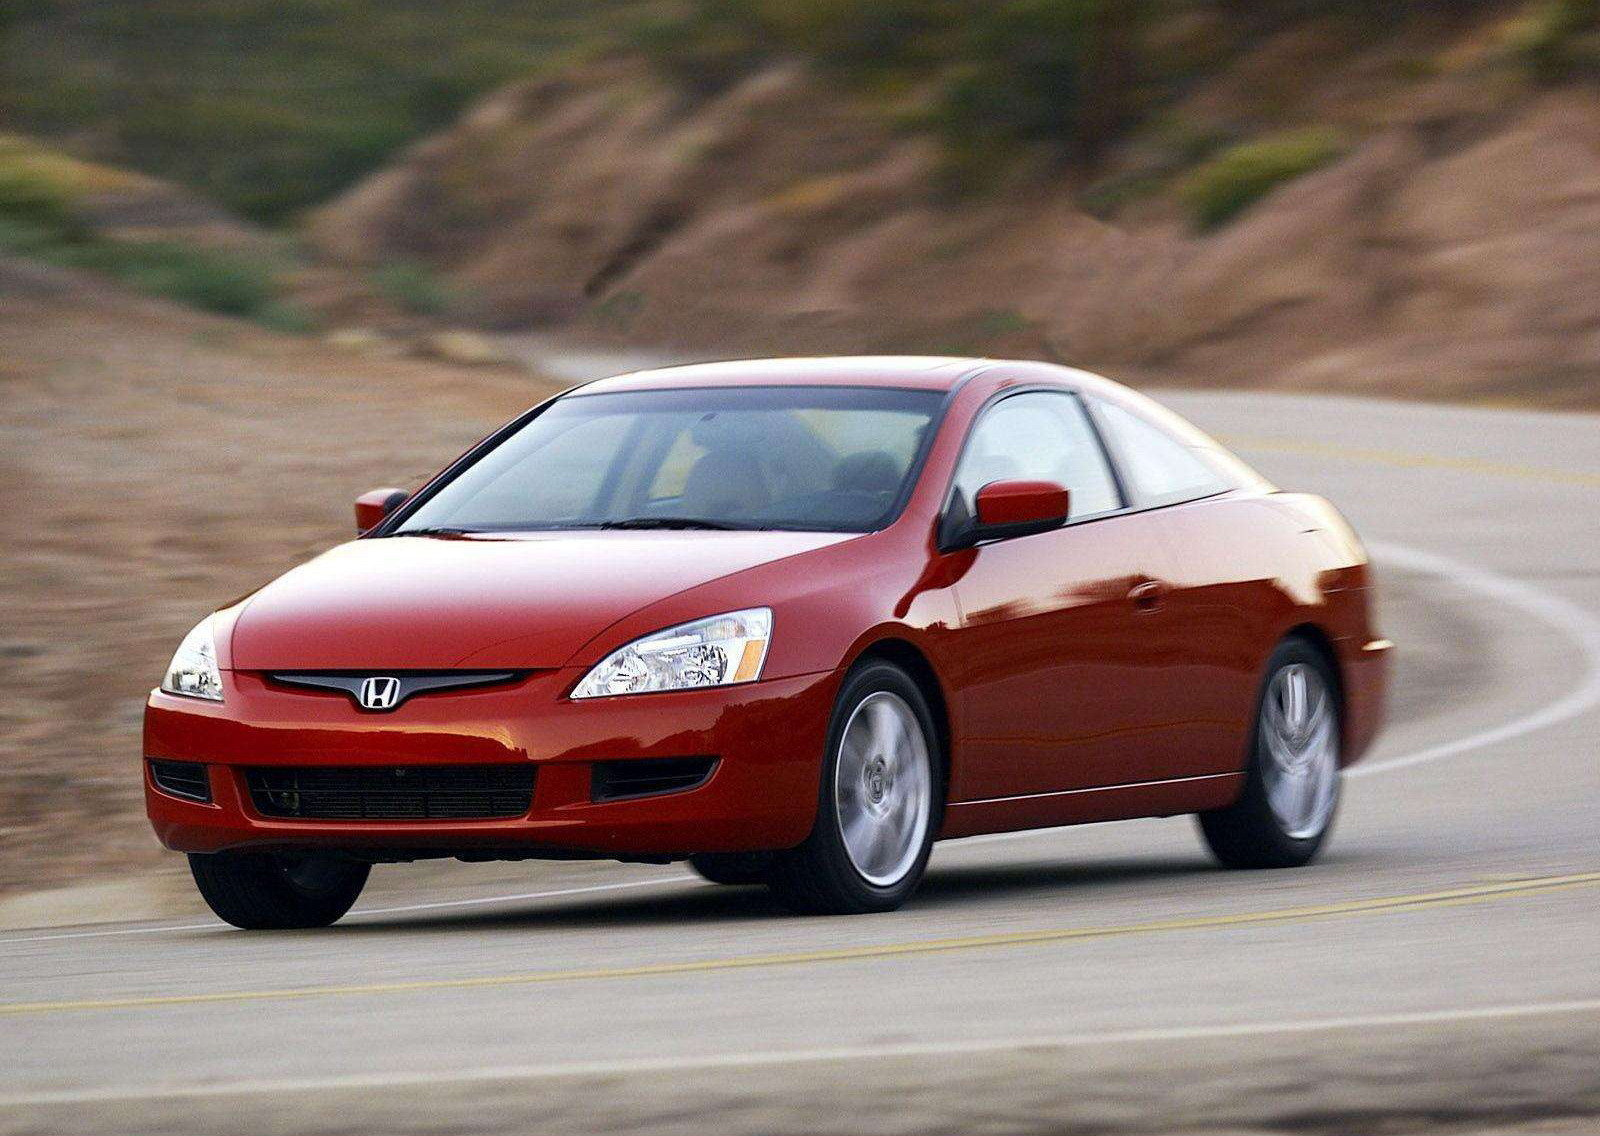 2008 honda accord picture 140240 car review top speed. Black Bedroom Furniture Sets. Home Design Ideas